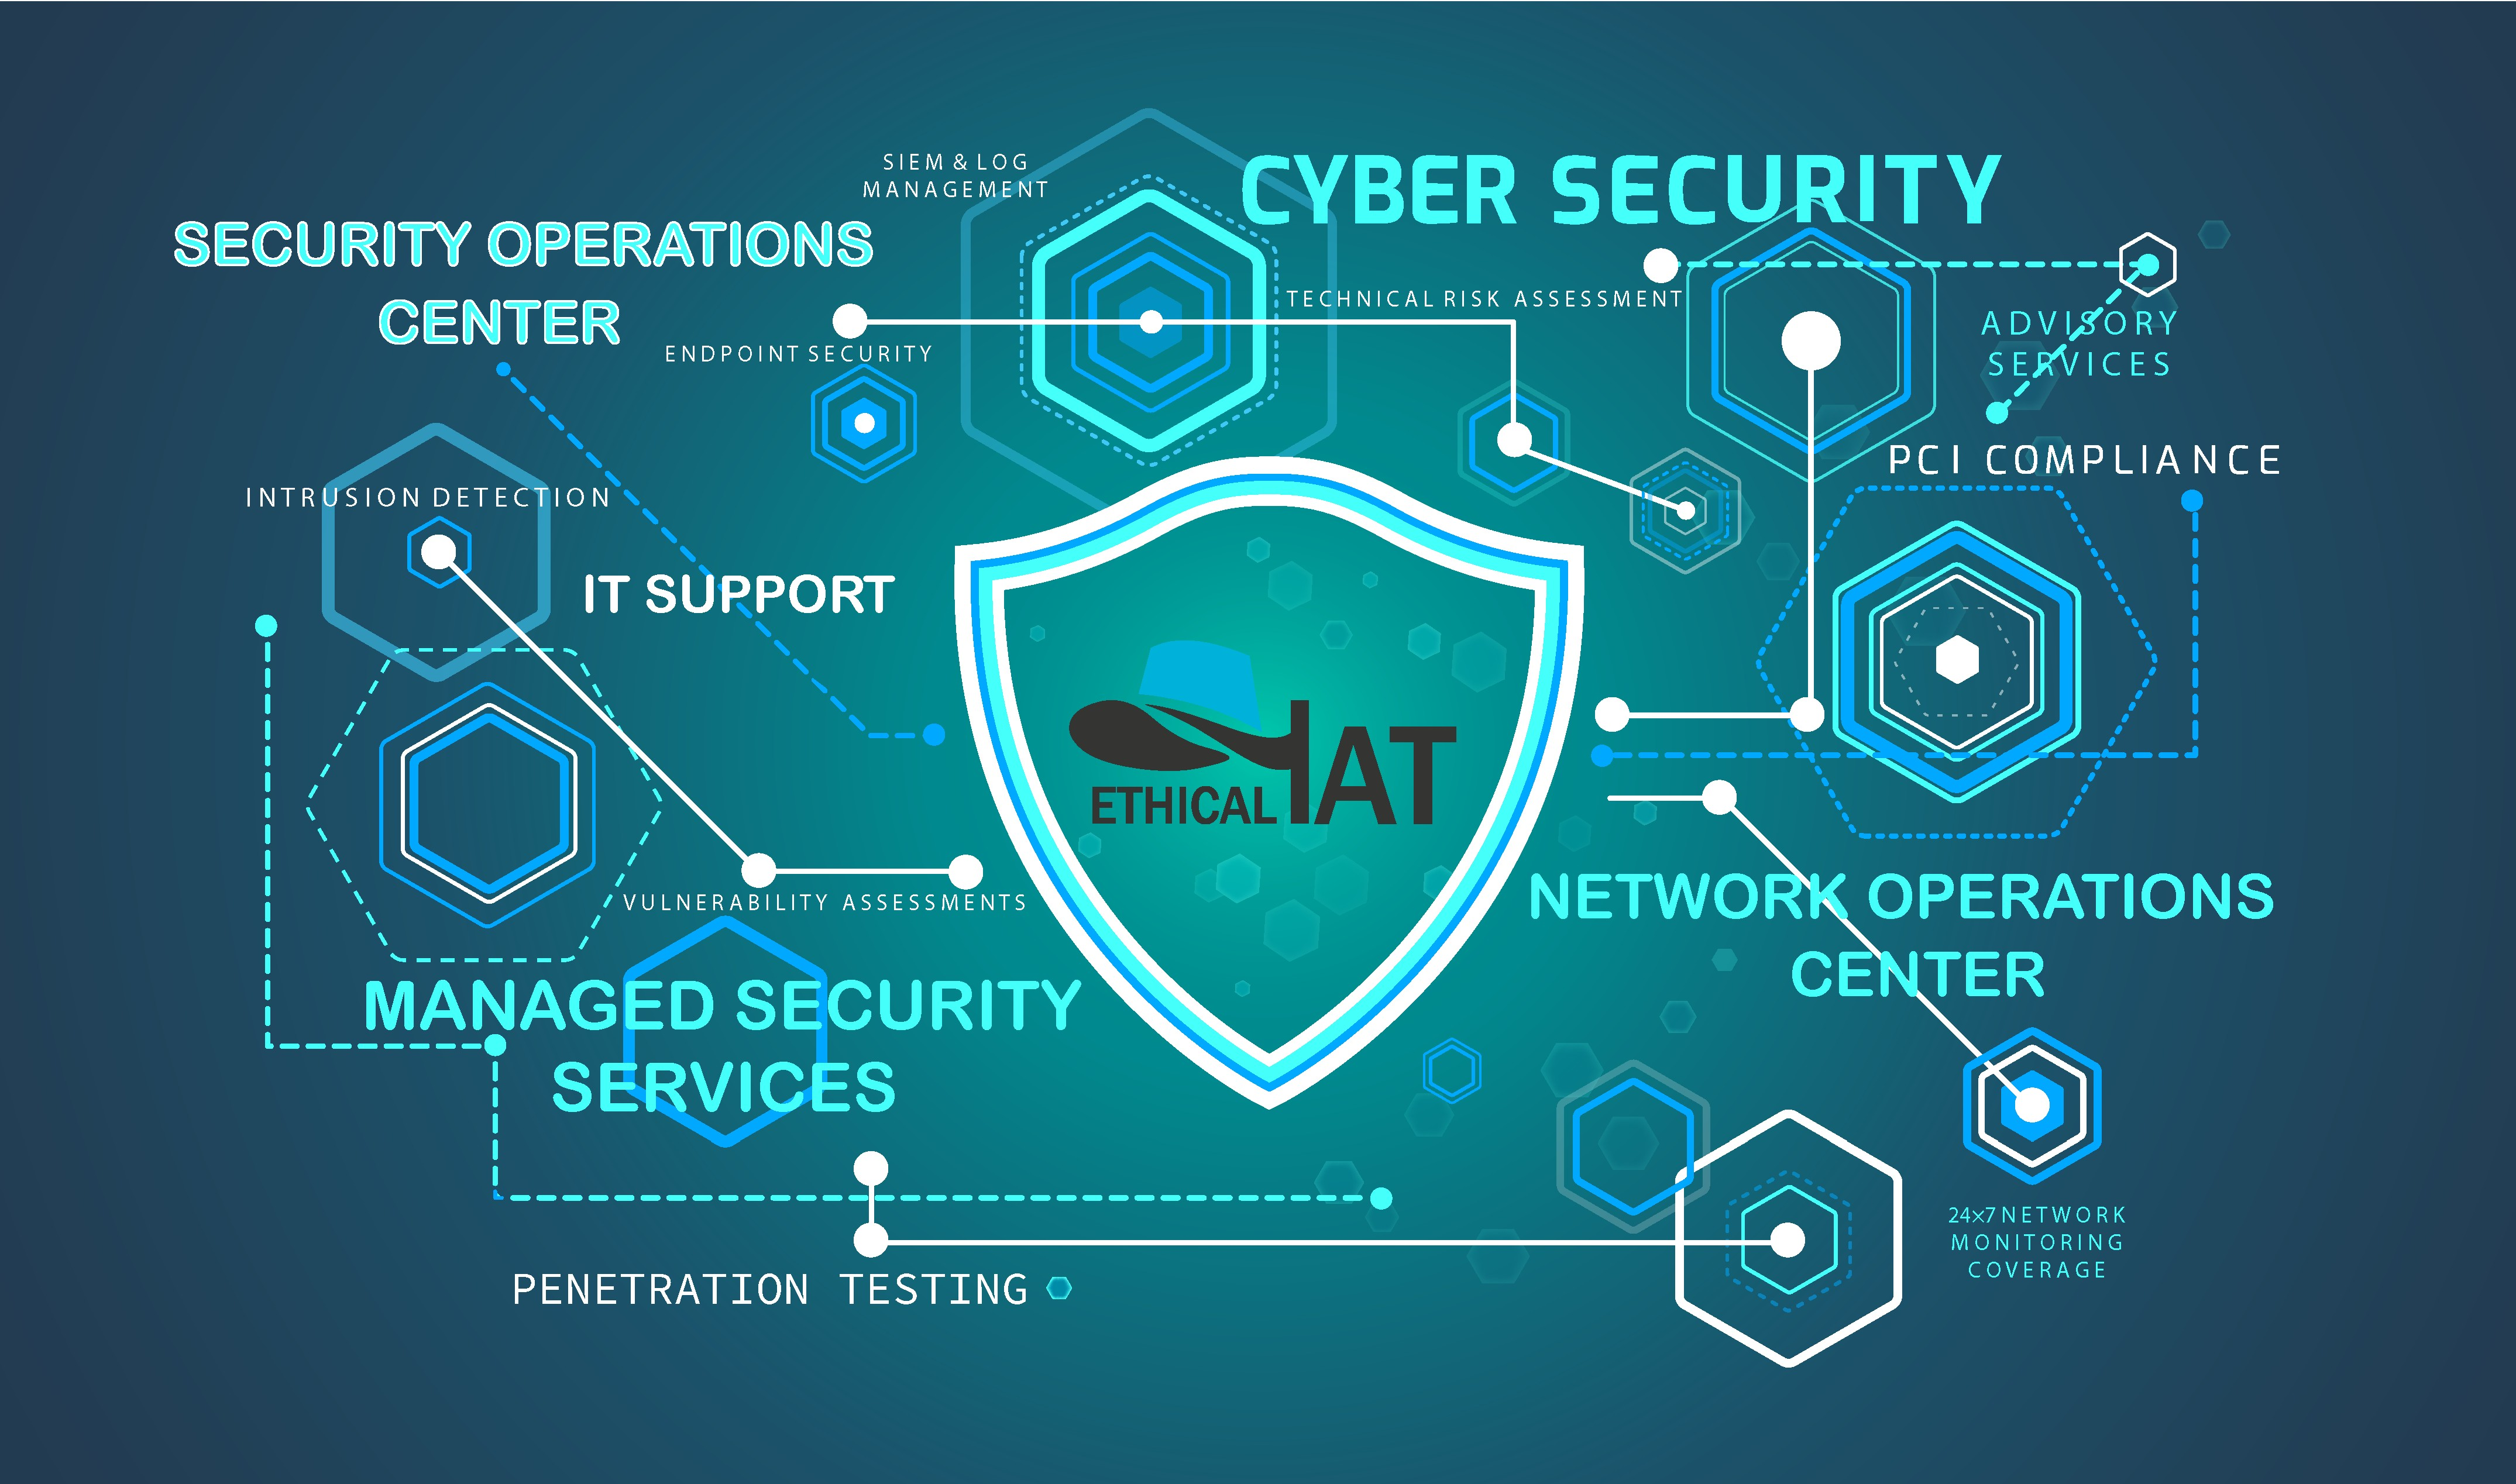 EthicalHat Cyber Security | LinkedIn